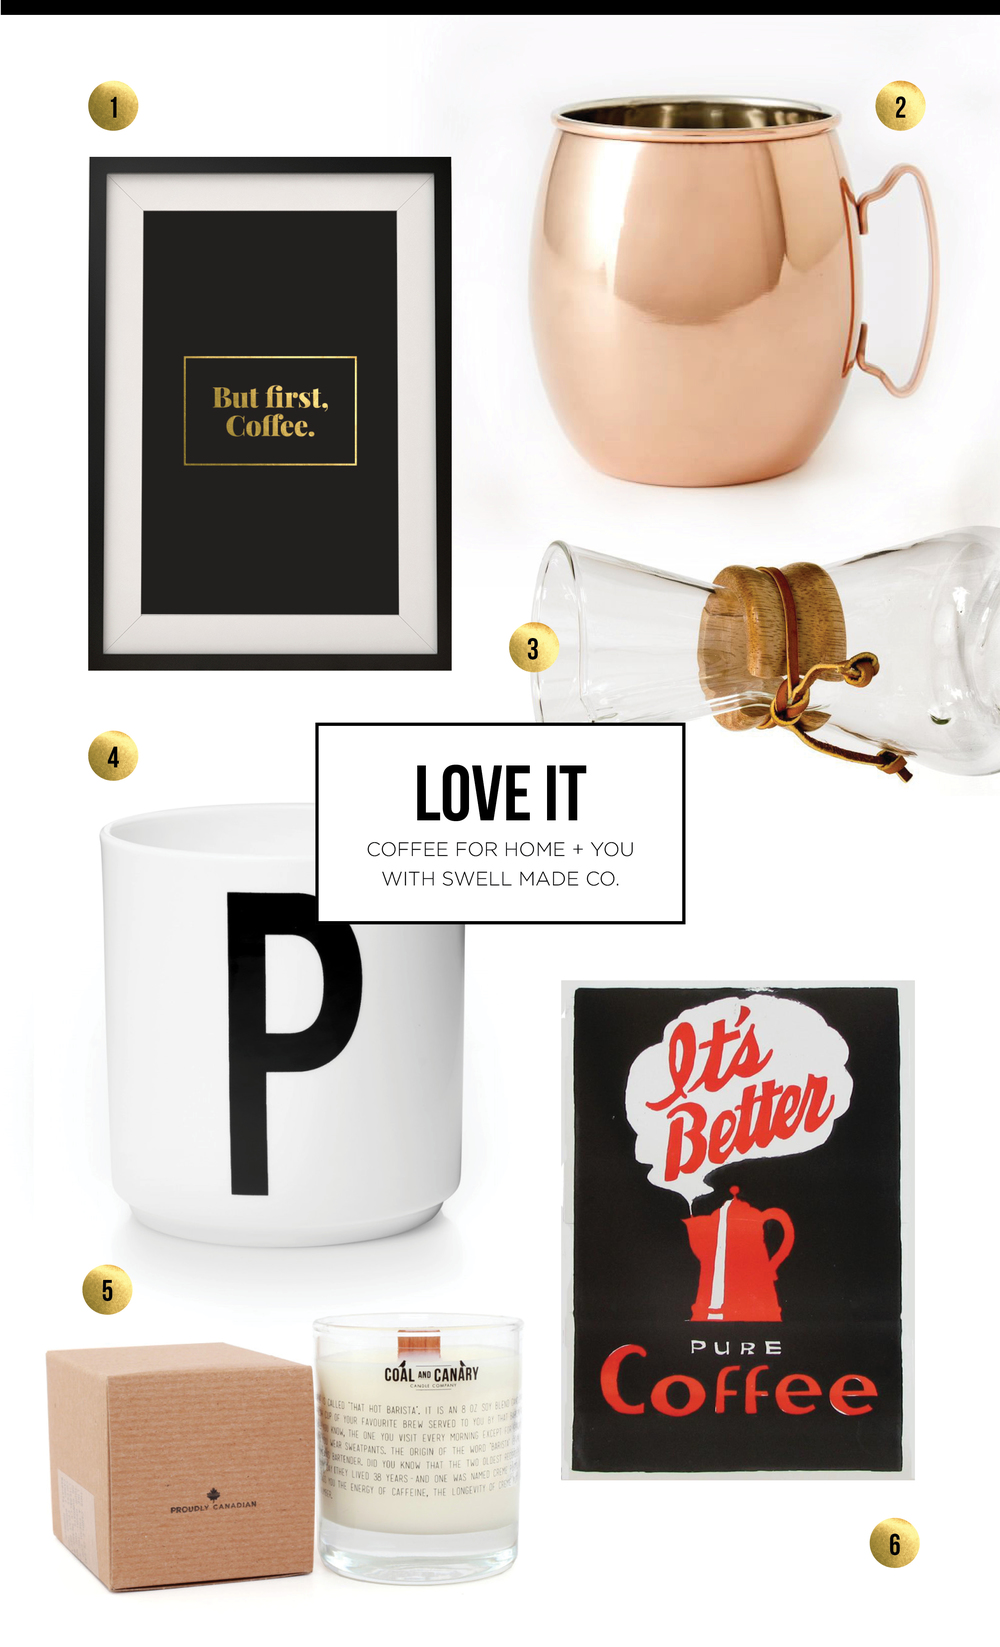 swellmadeco-loveit-coffee.jpg